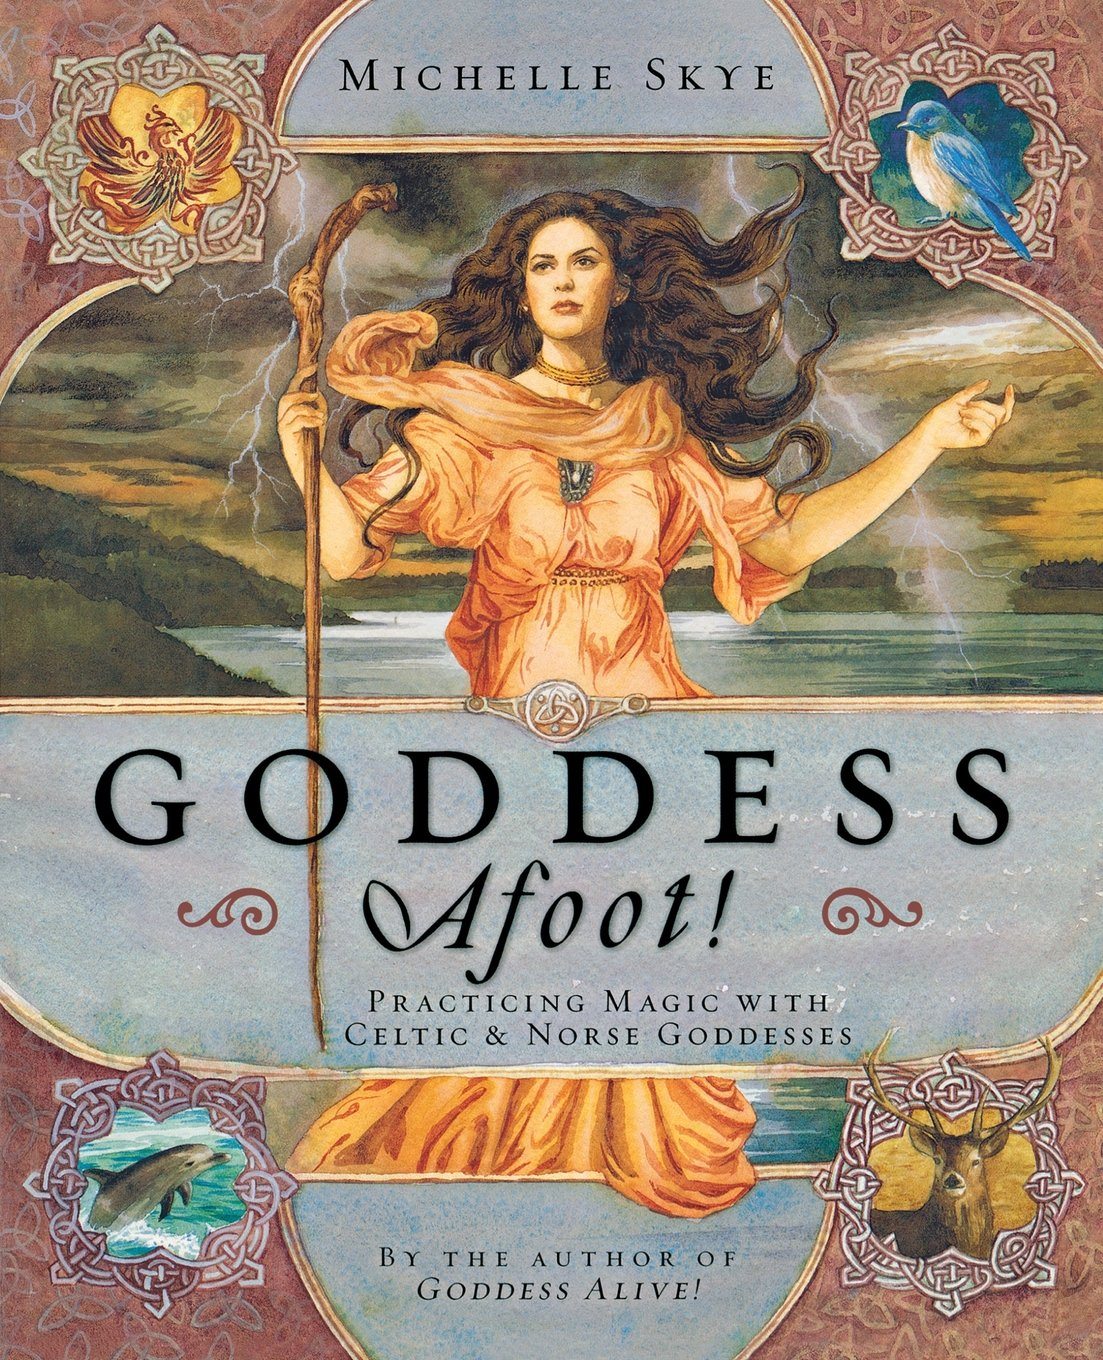 Download Goddess Afoot!: Practicing Magic with Celtic & Norse Goddesses PDF